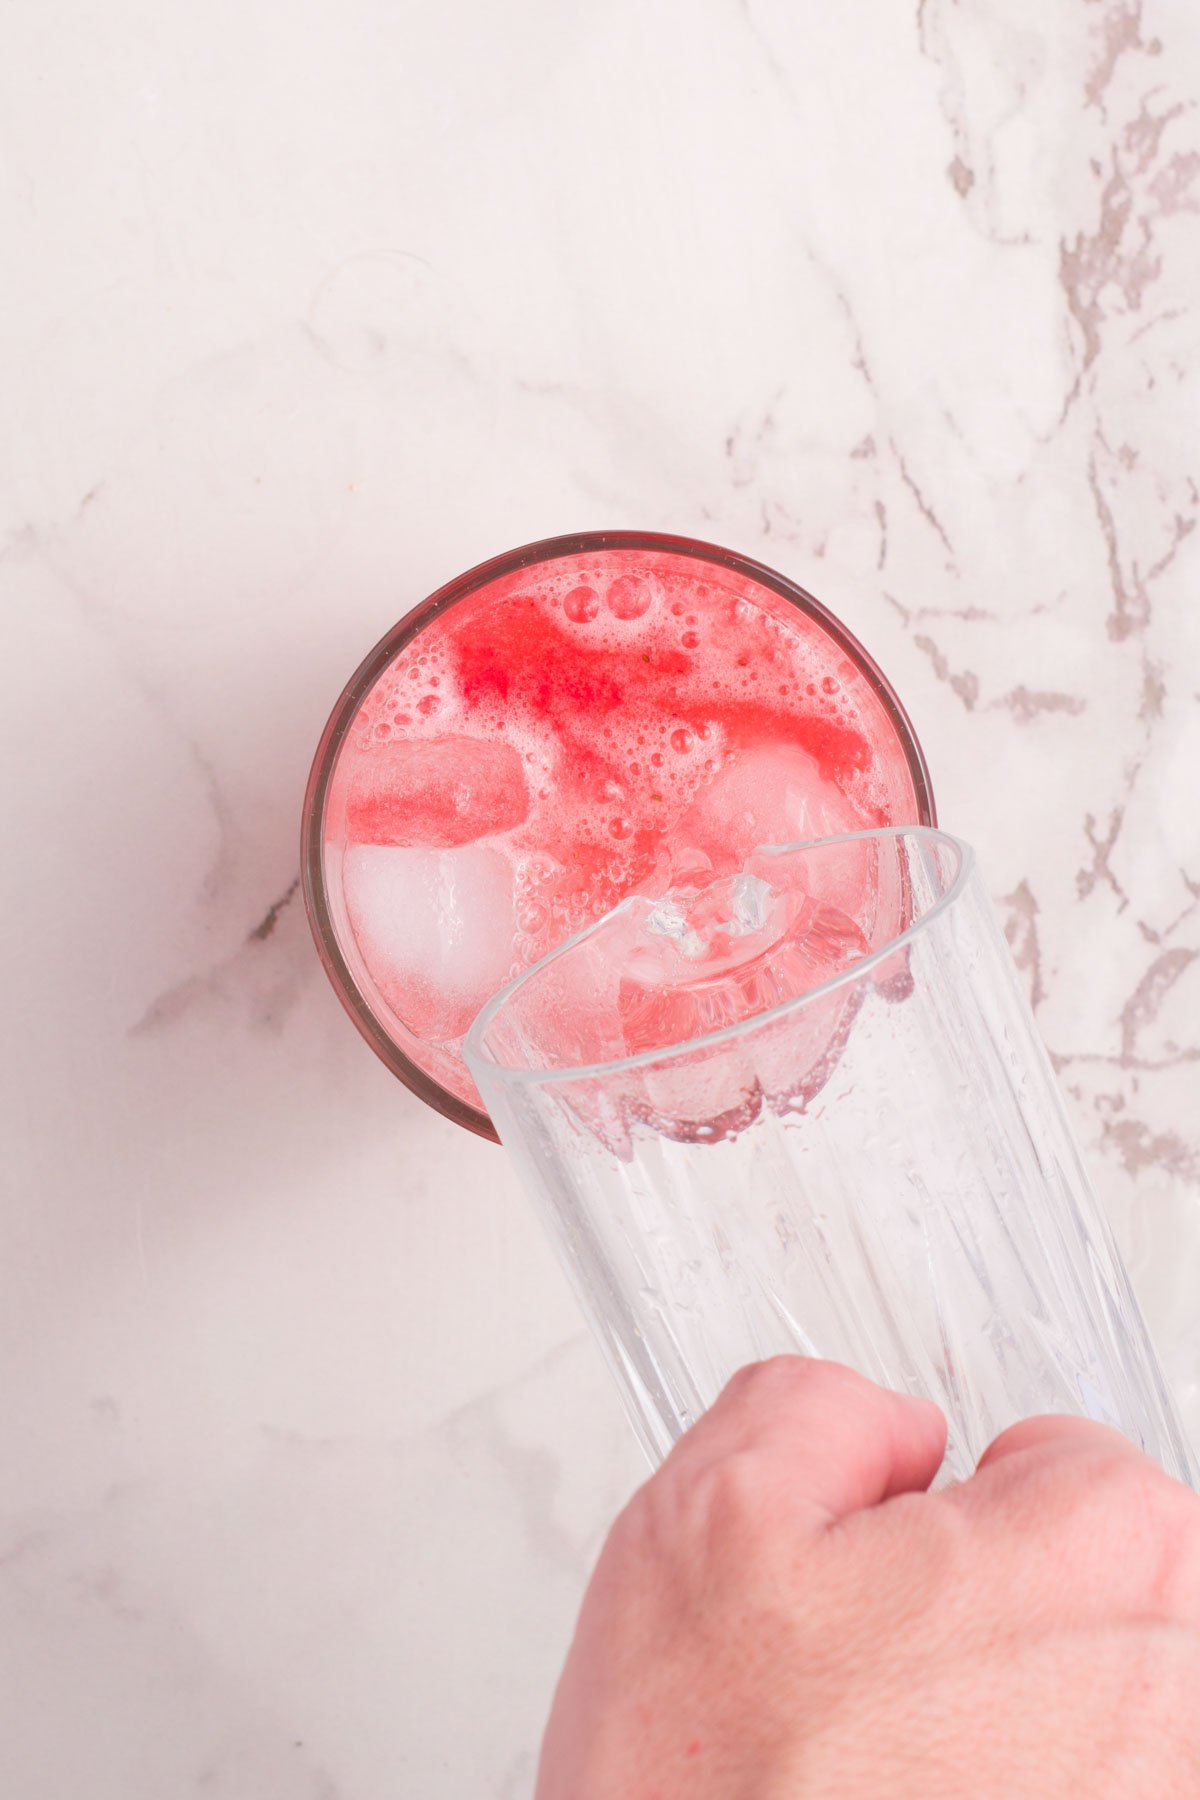 pouring ice into a glass of strawberry lemonade